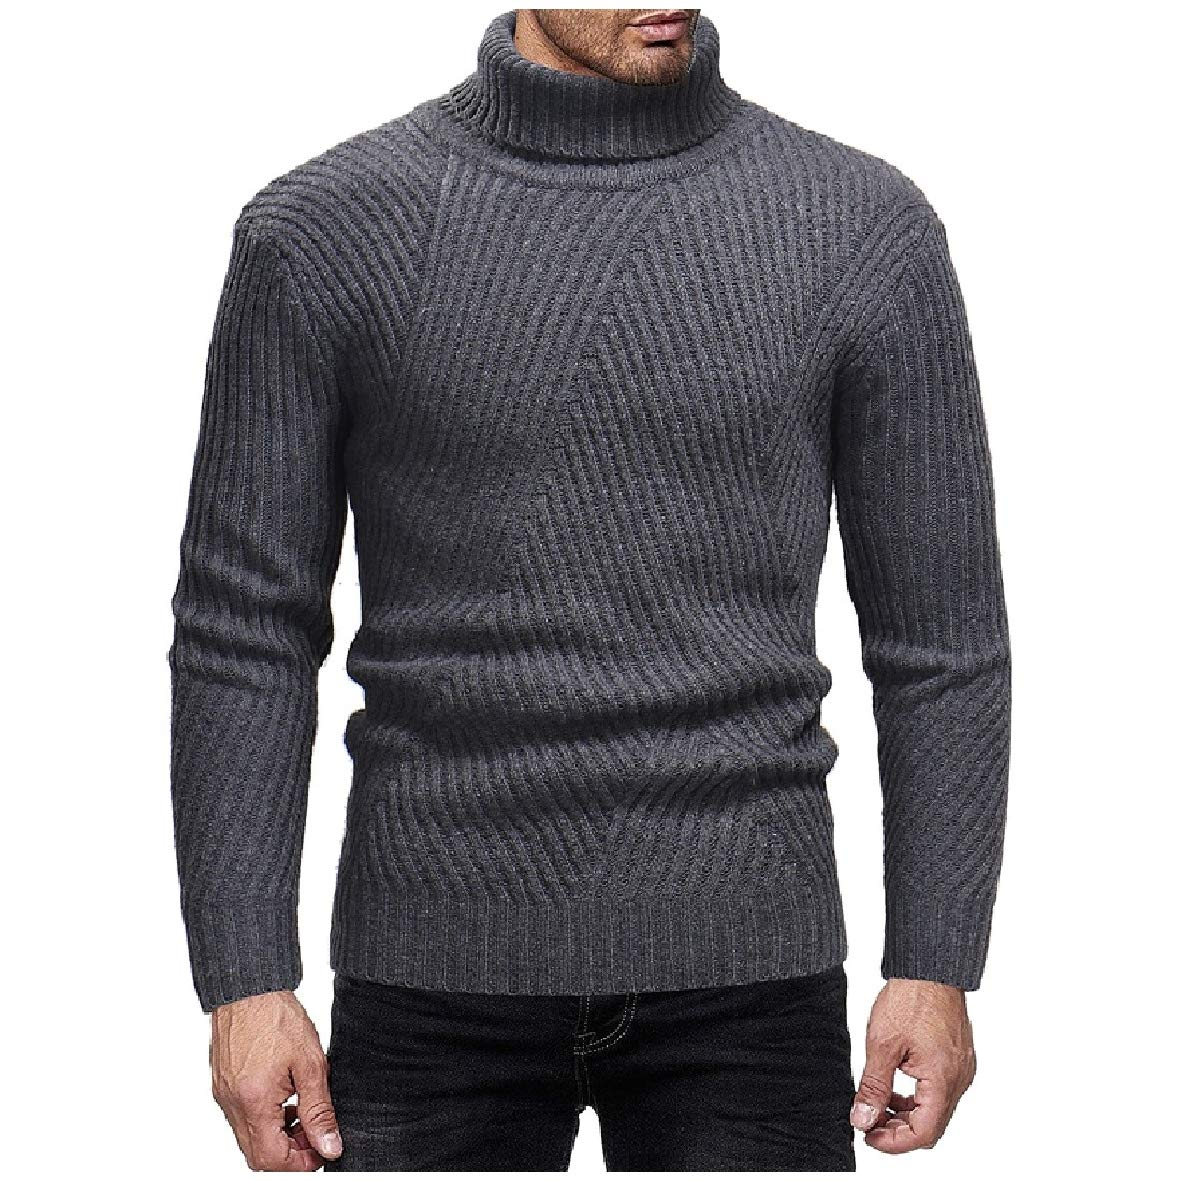 Tootless-Men Pullover Knit Stripes Comfy Autumn Winter Turtle Neck Sweaters